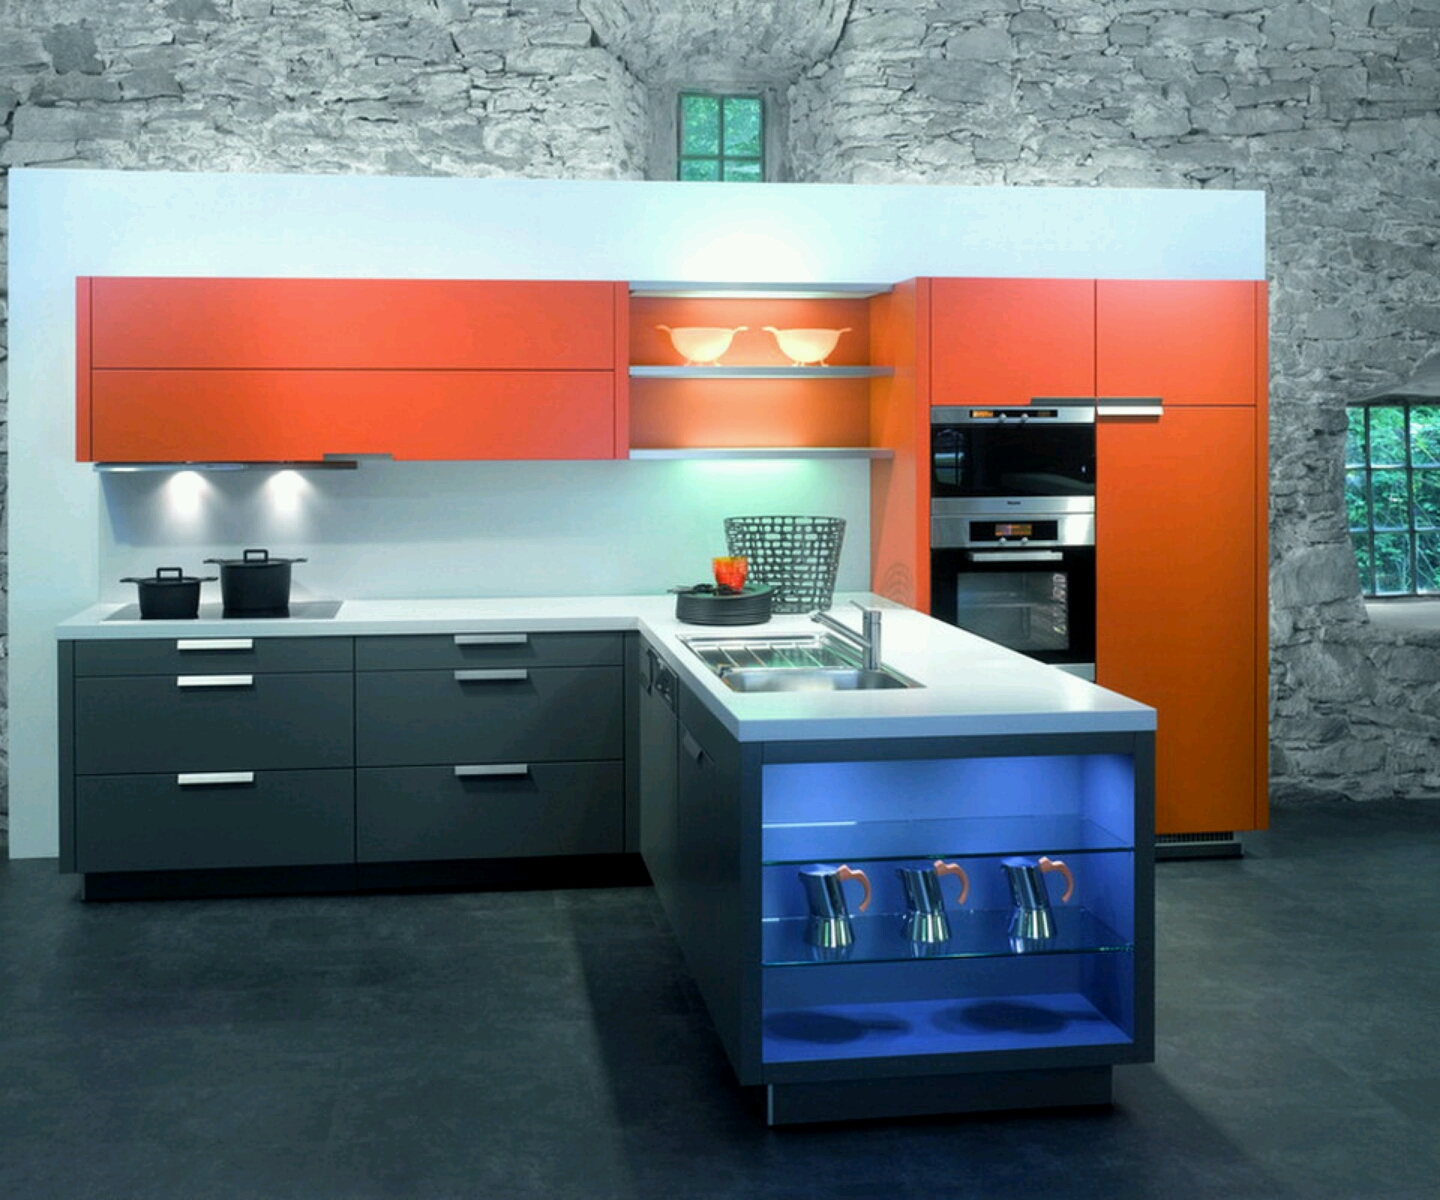 New home designs latest.: Modern homes ultra modern ... on Ultra Modern Luxury Modern Kitchen Designs  id=18646